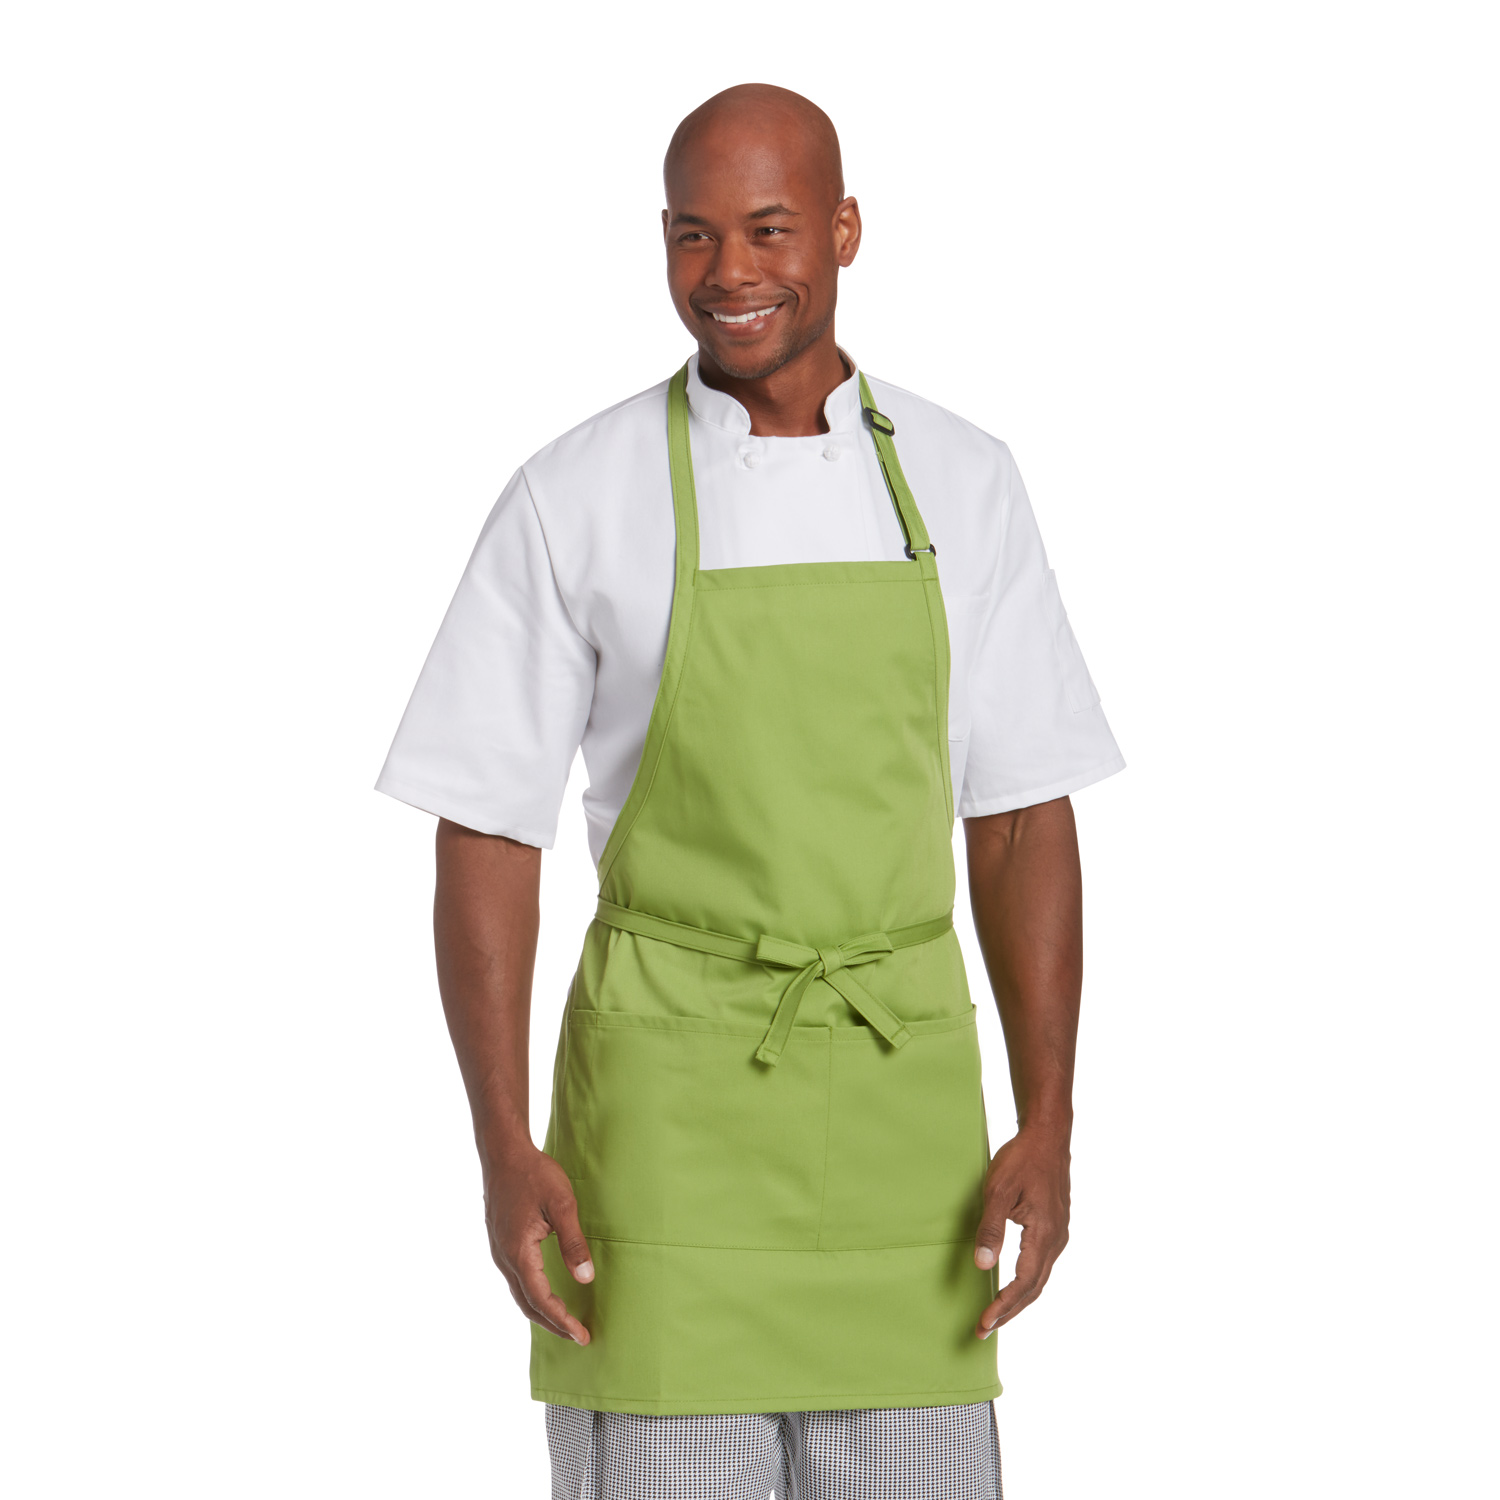 Best Seller - Chefwear (Chef Wear) 2-Pocket Bib Apron (CW1648)